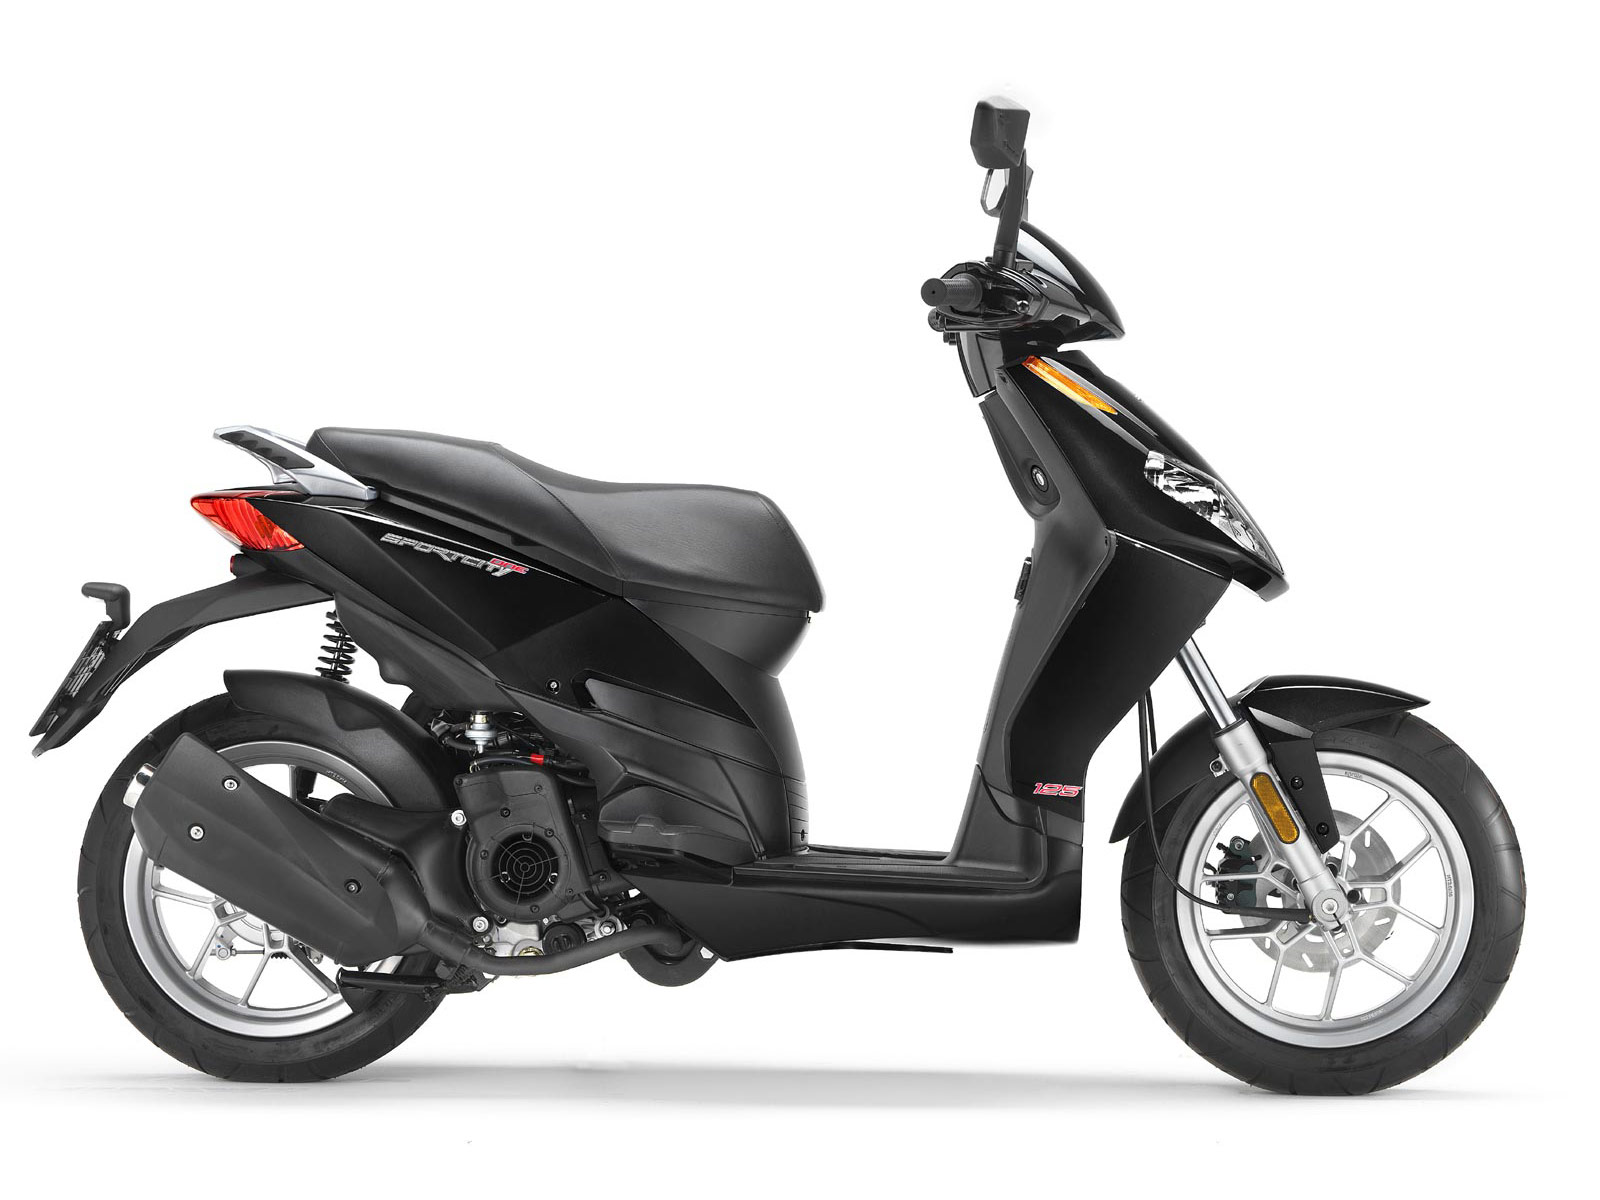 2009 aprilia sportcity one 125 scooter insurance. Black Bedroom Furniture Sets. Home Design Ideas